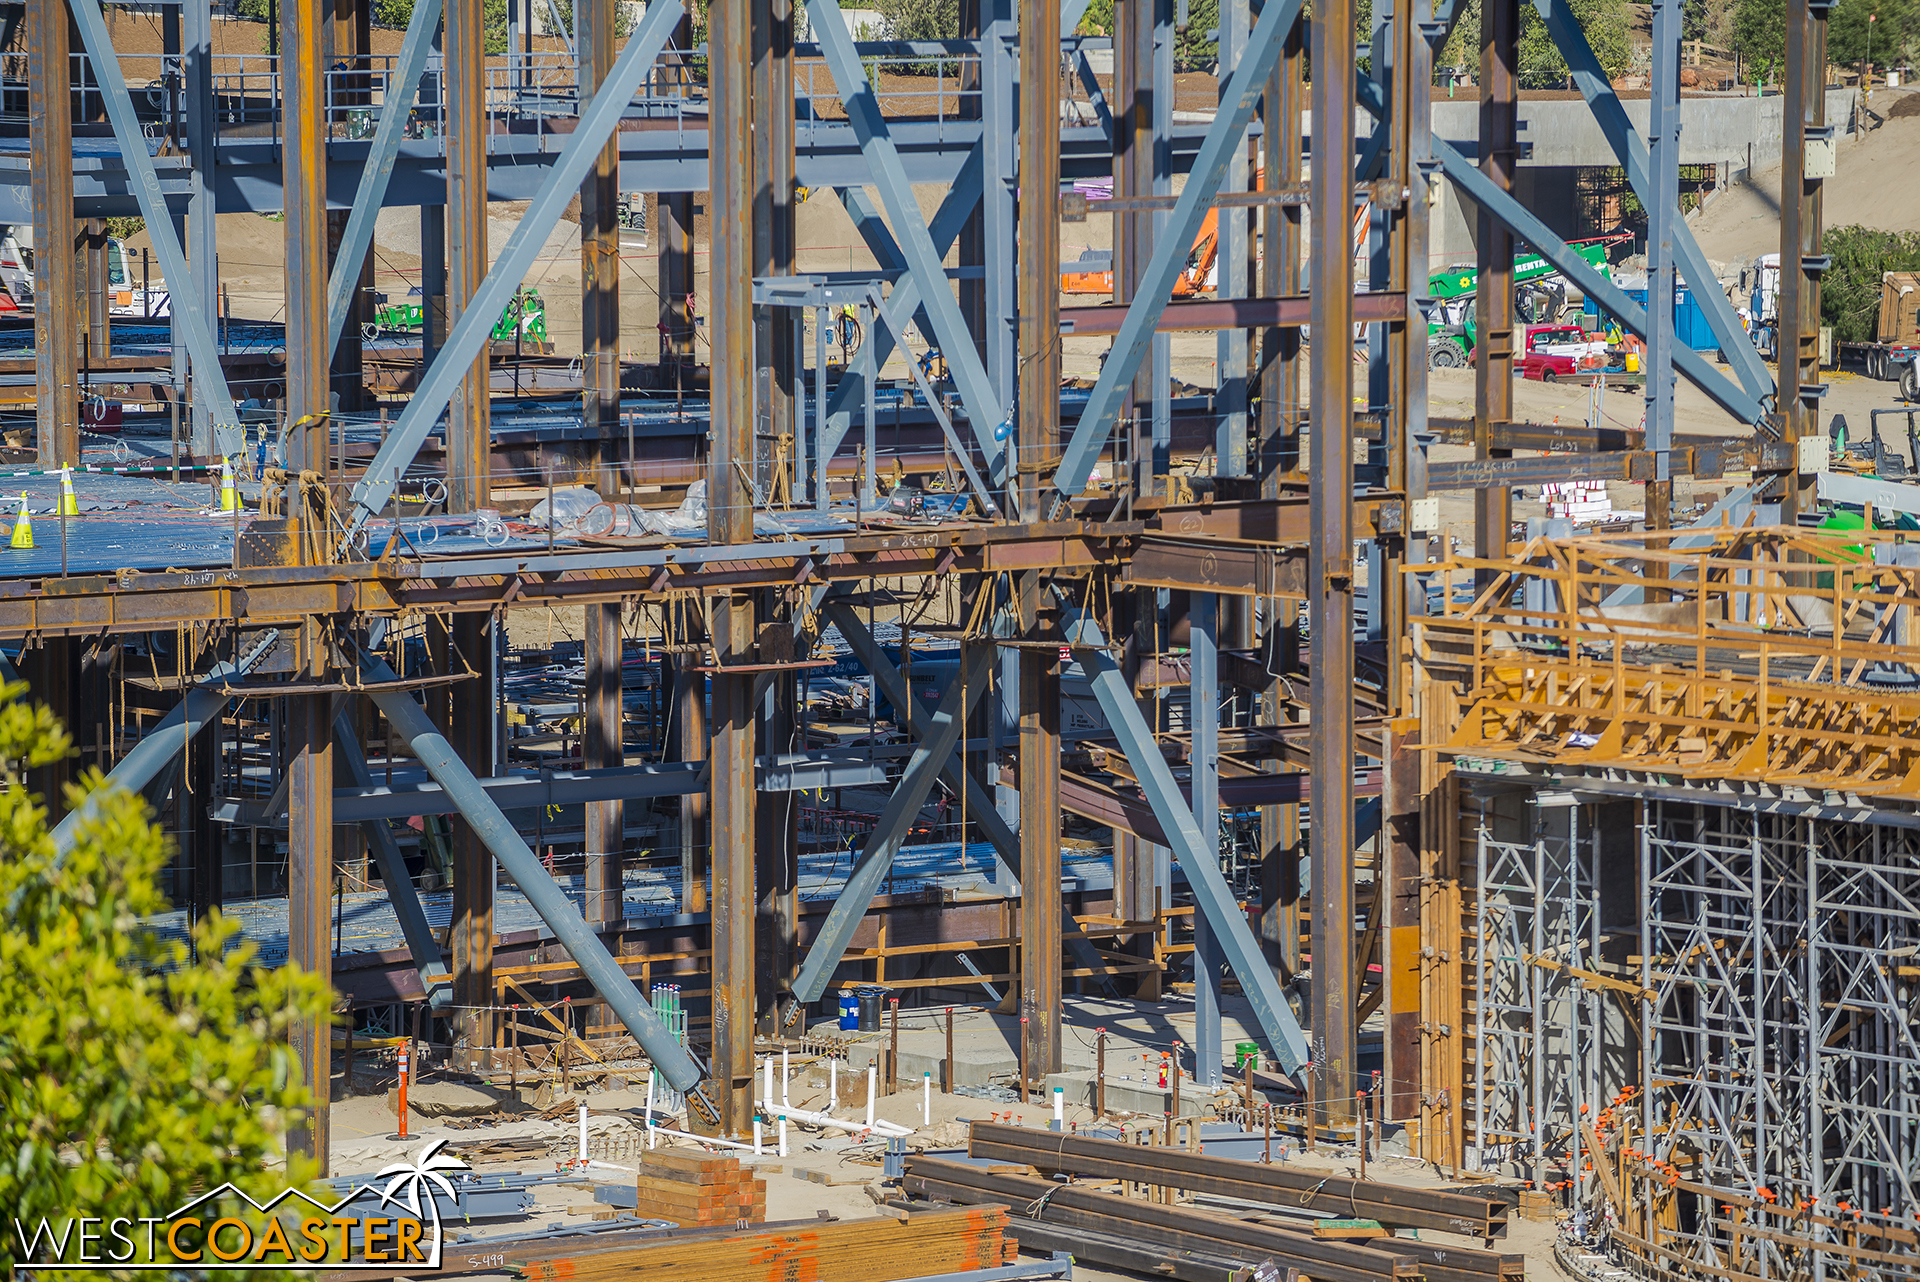 For all you structures enthusiasts, here's a close-up of some pretty dense braced frame intersections.